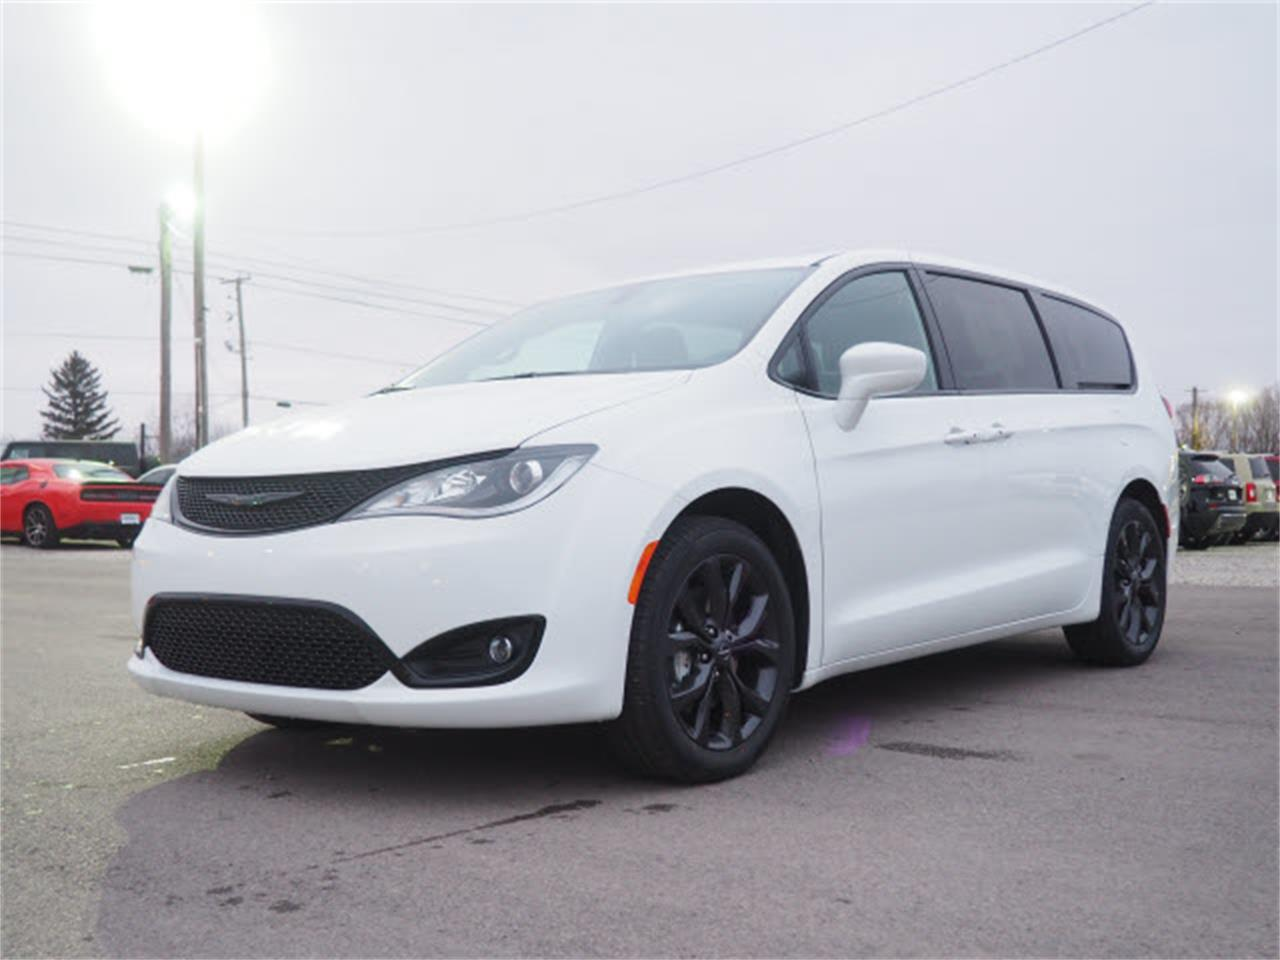 2020 Chrysler Pacifica (CC-1327582) for sale in Marysville, Ohio